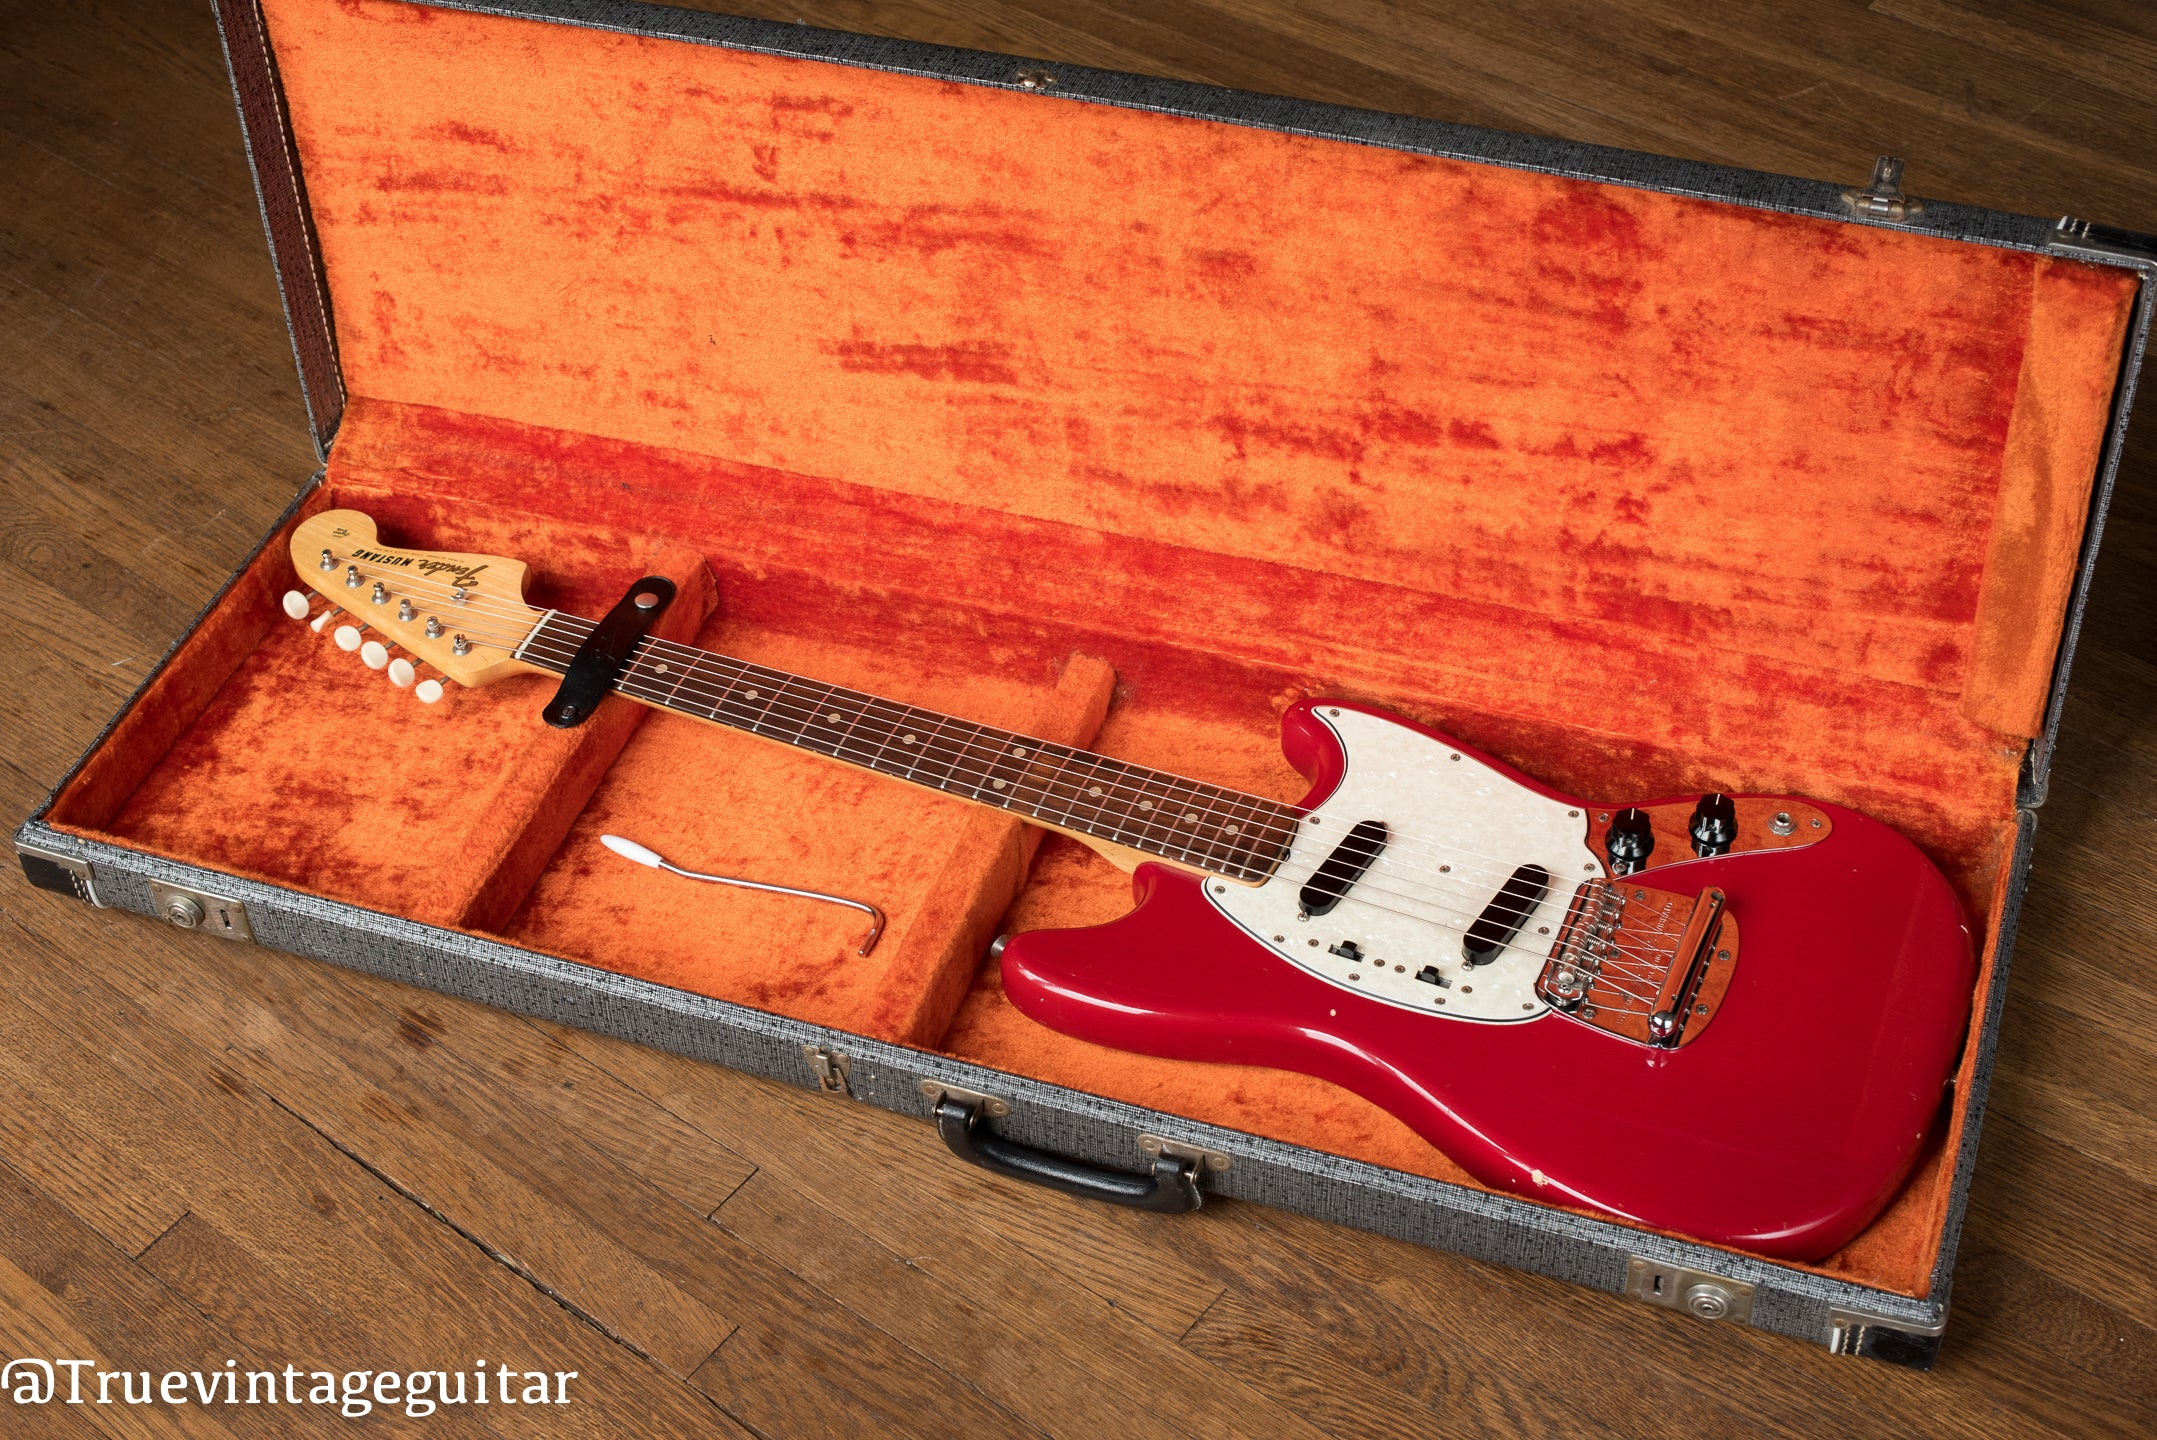 1960s Fender guitar red